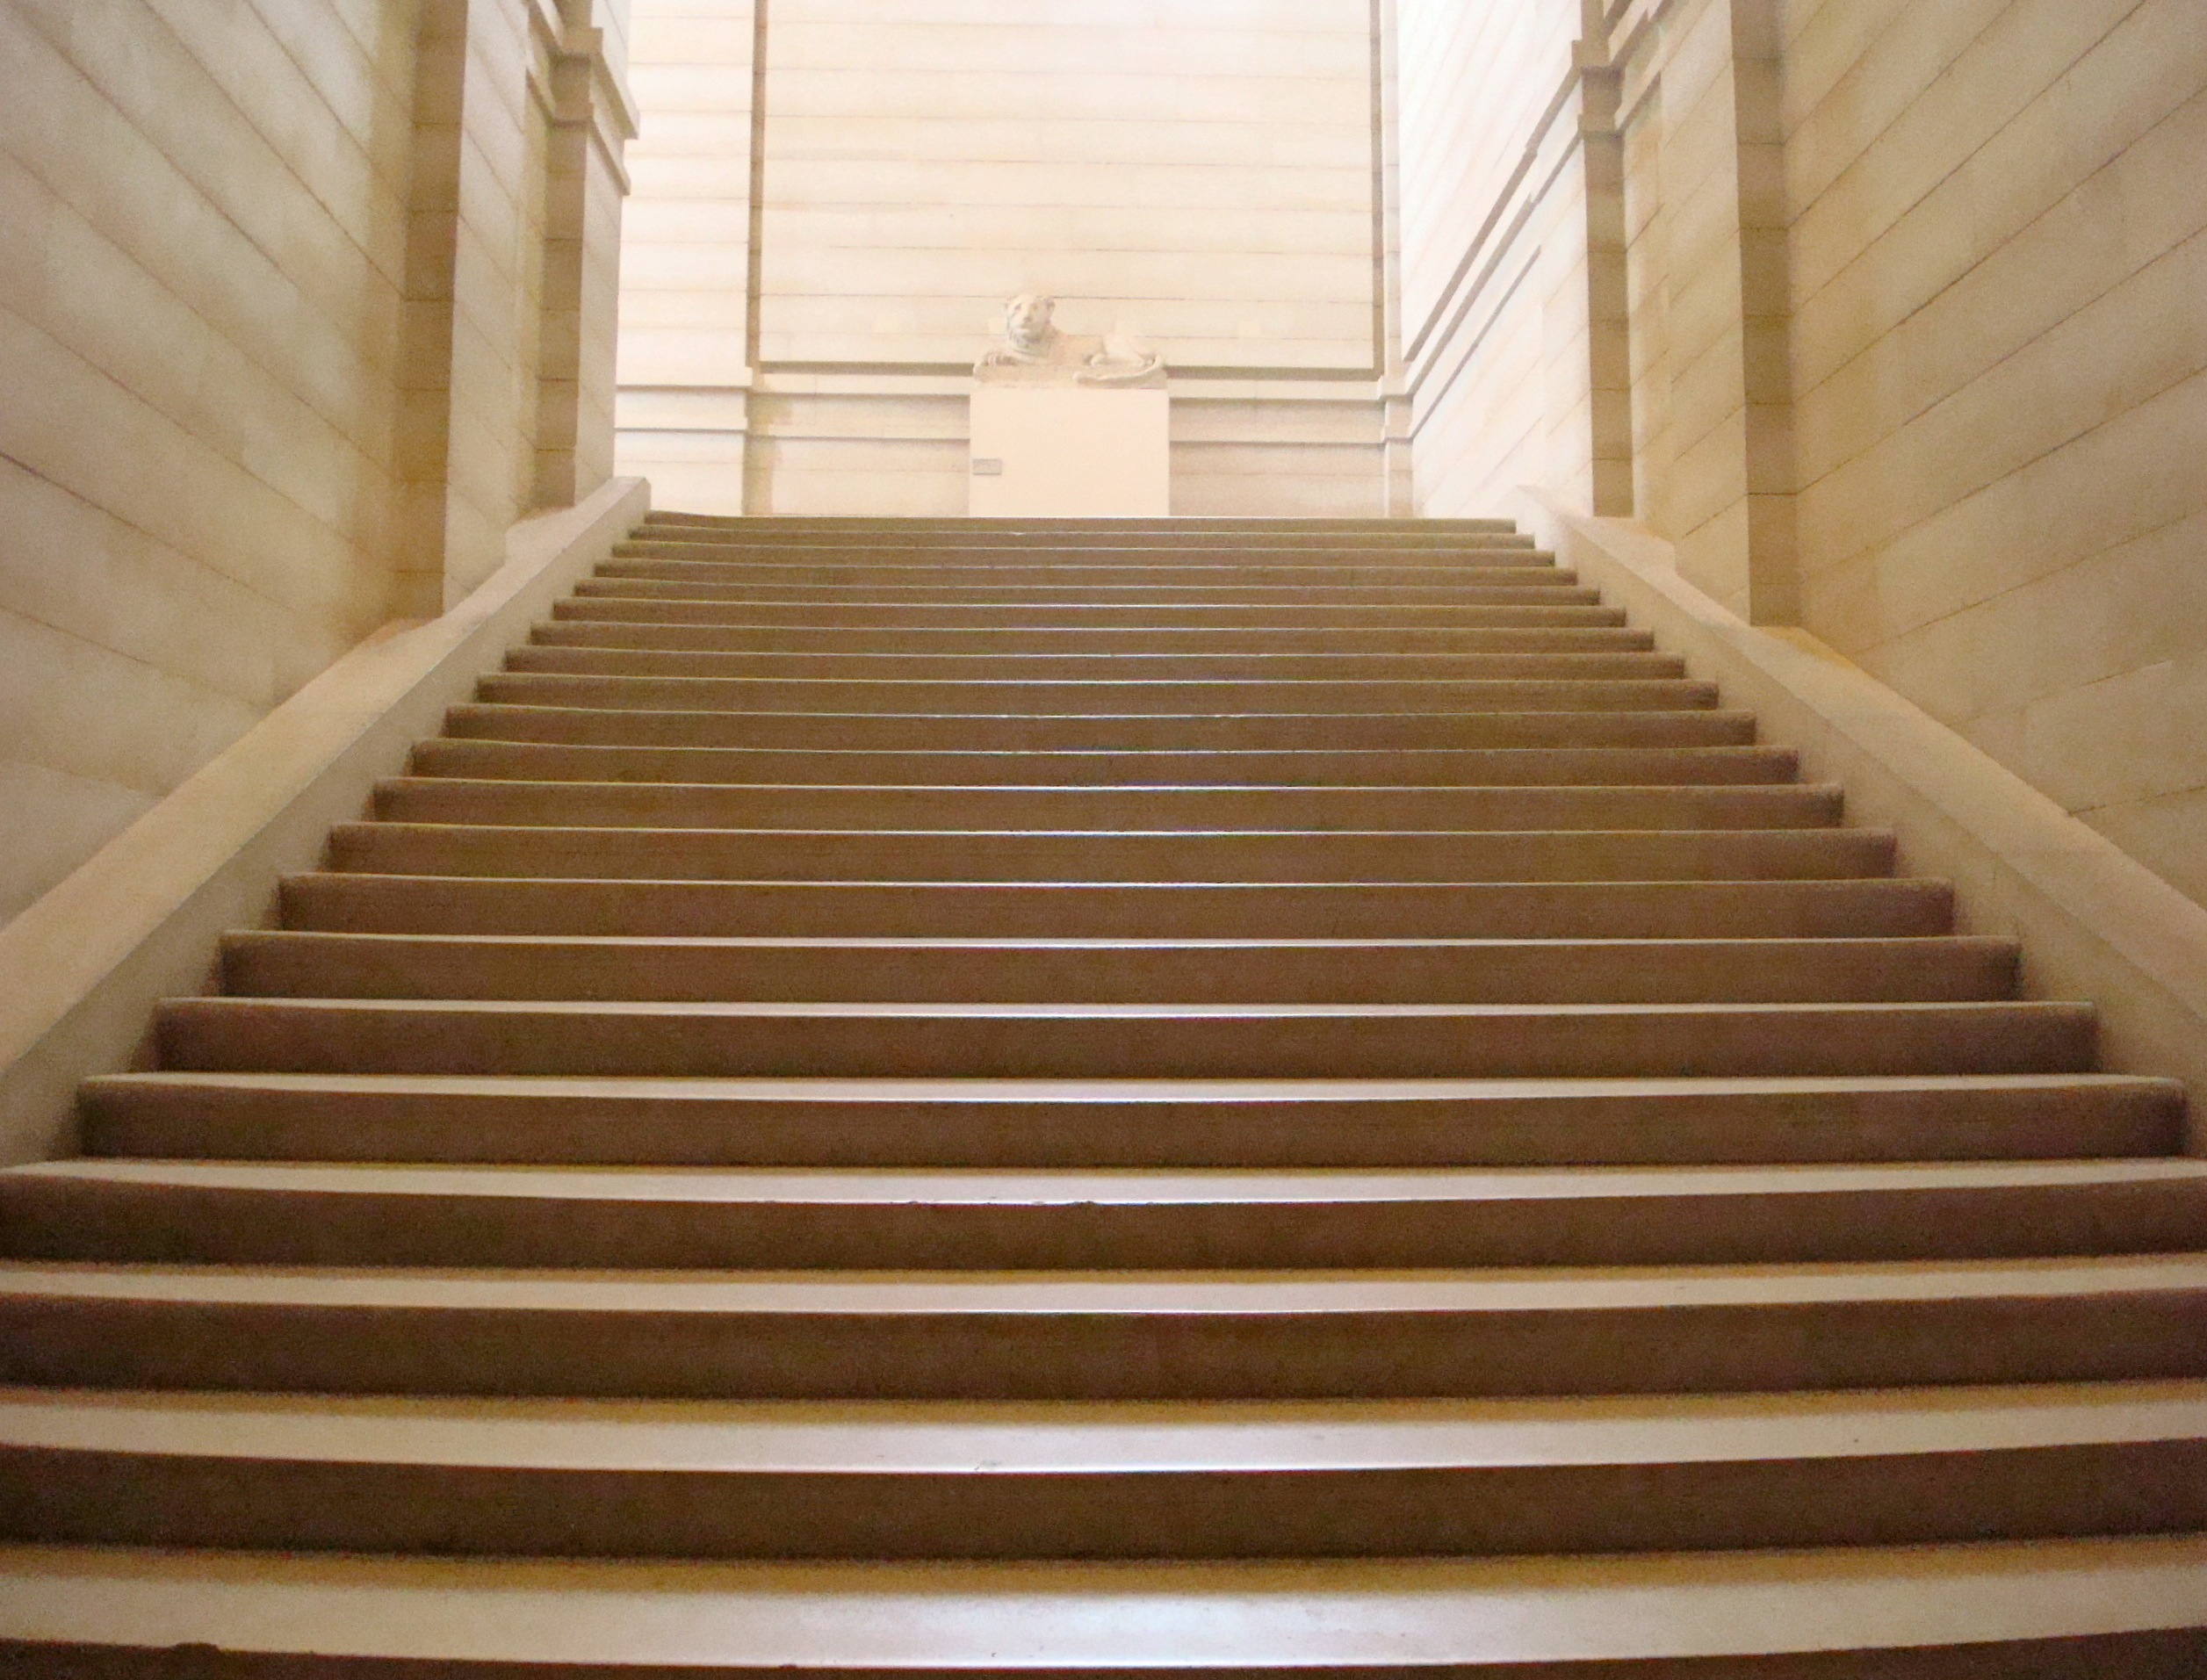 Big Steps Baby Steps Stair Steps Besthomehealth